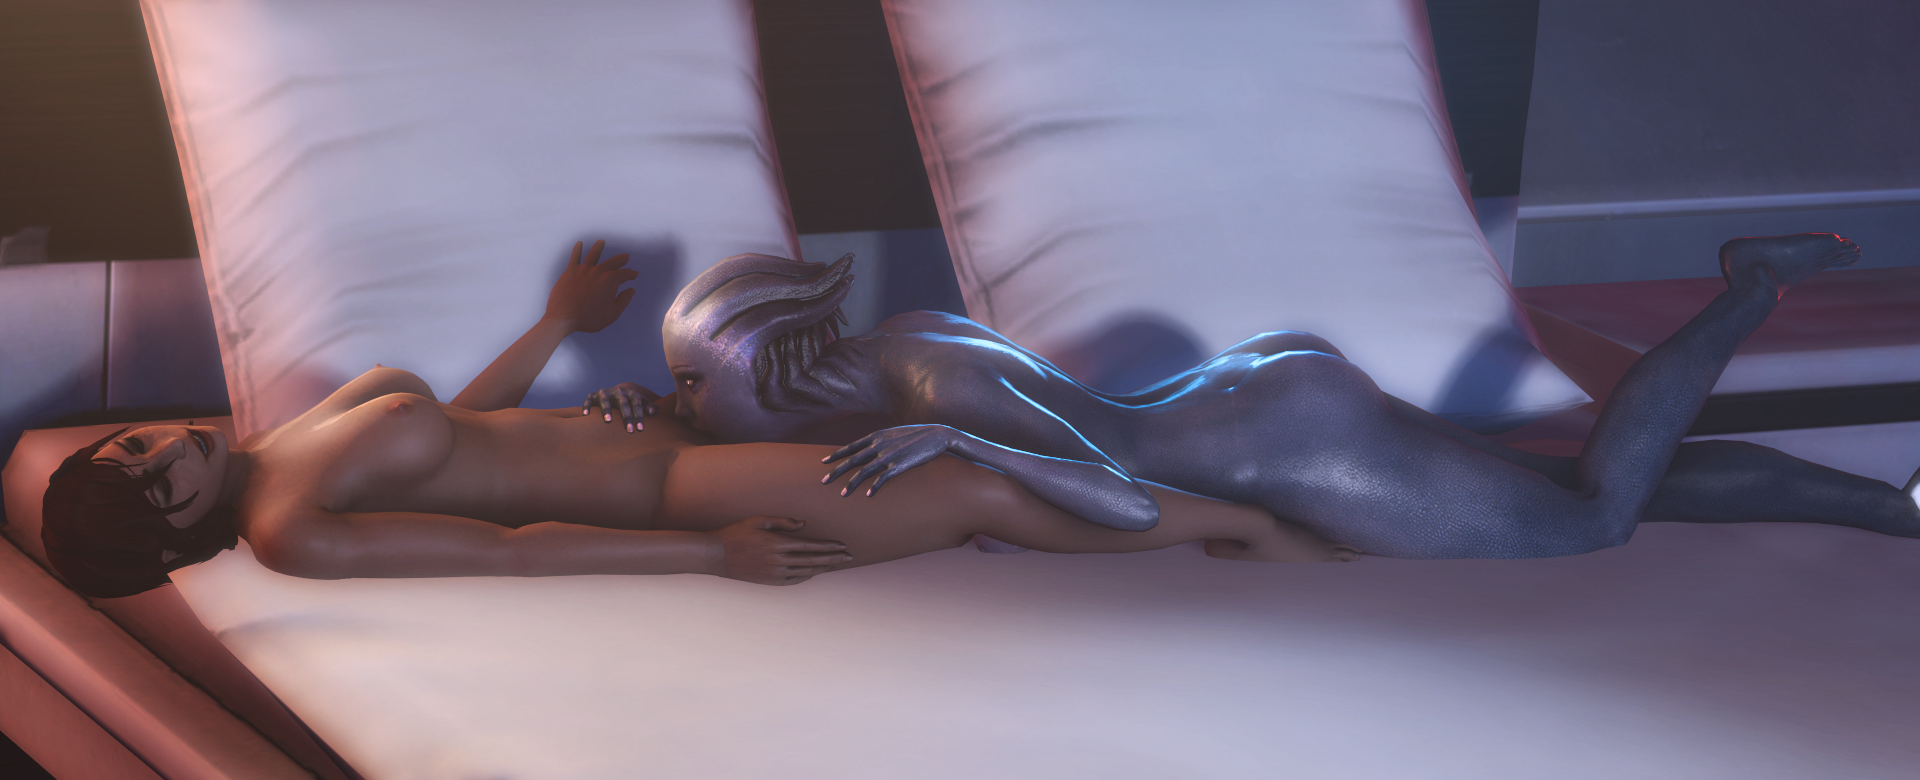 Mass effect 1 nude liara patch fucking movie